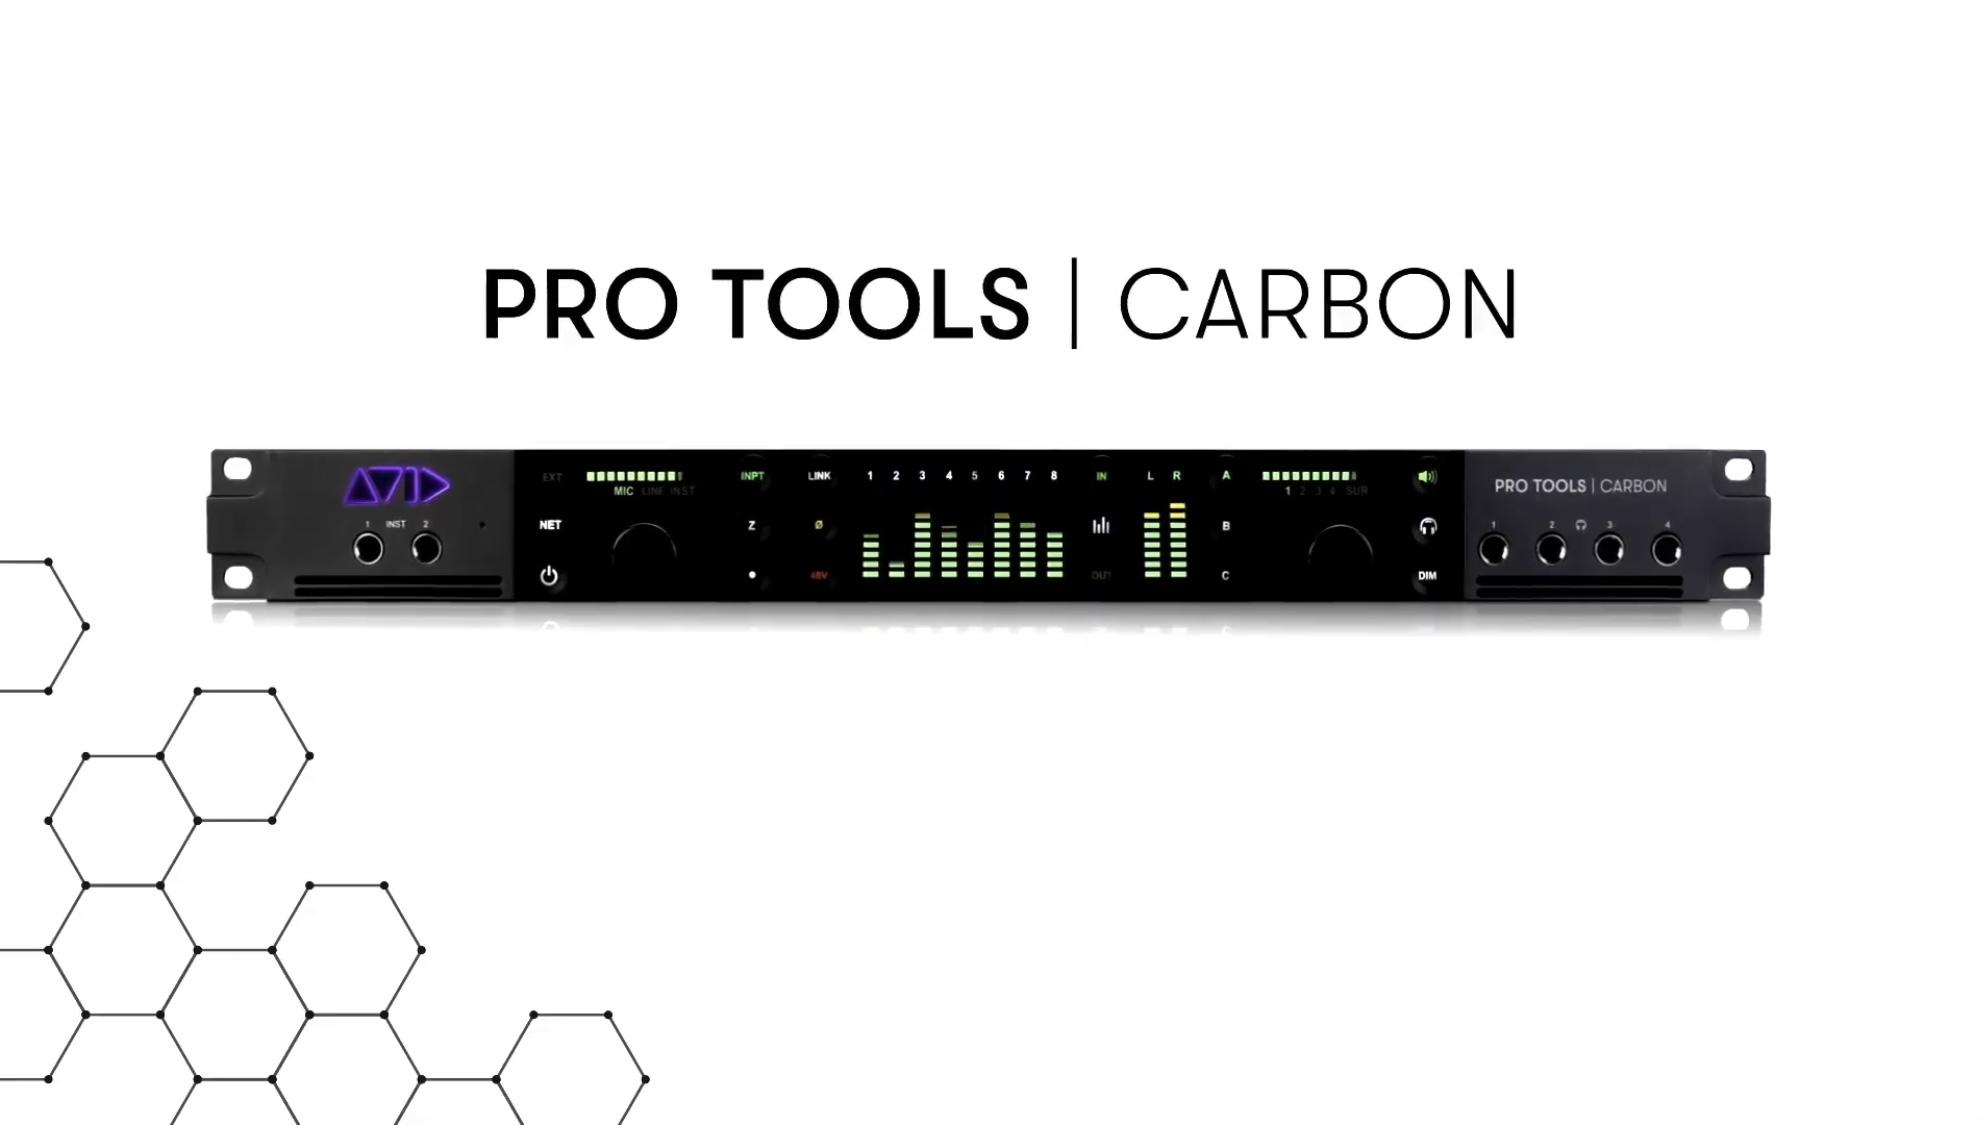 New Pro Tools CARBON Hybrid Production System